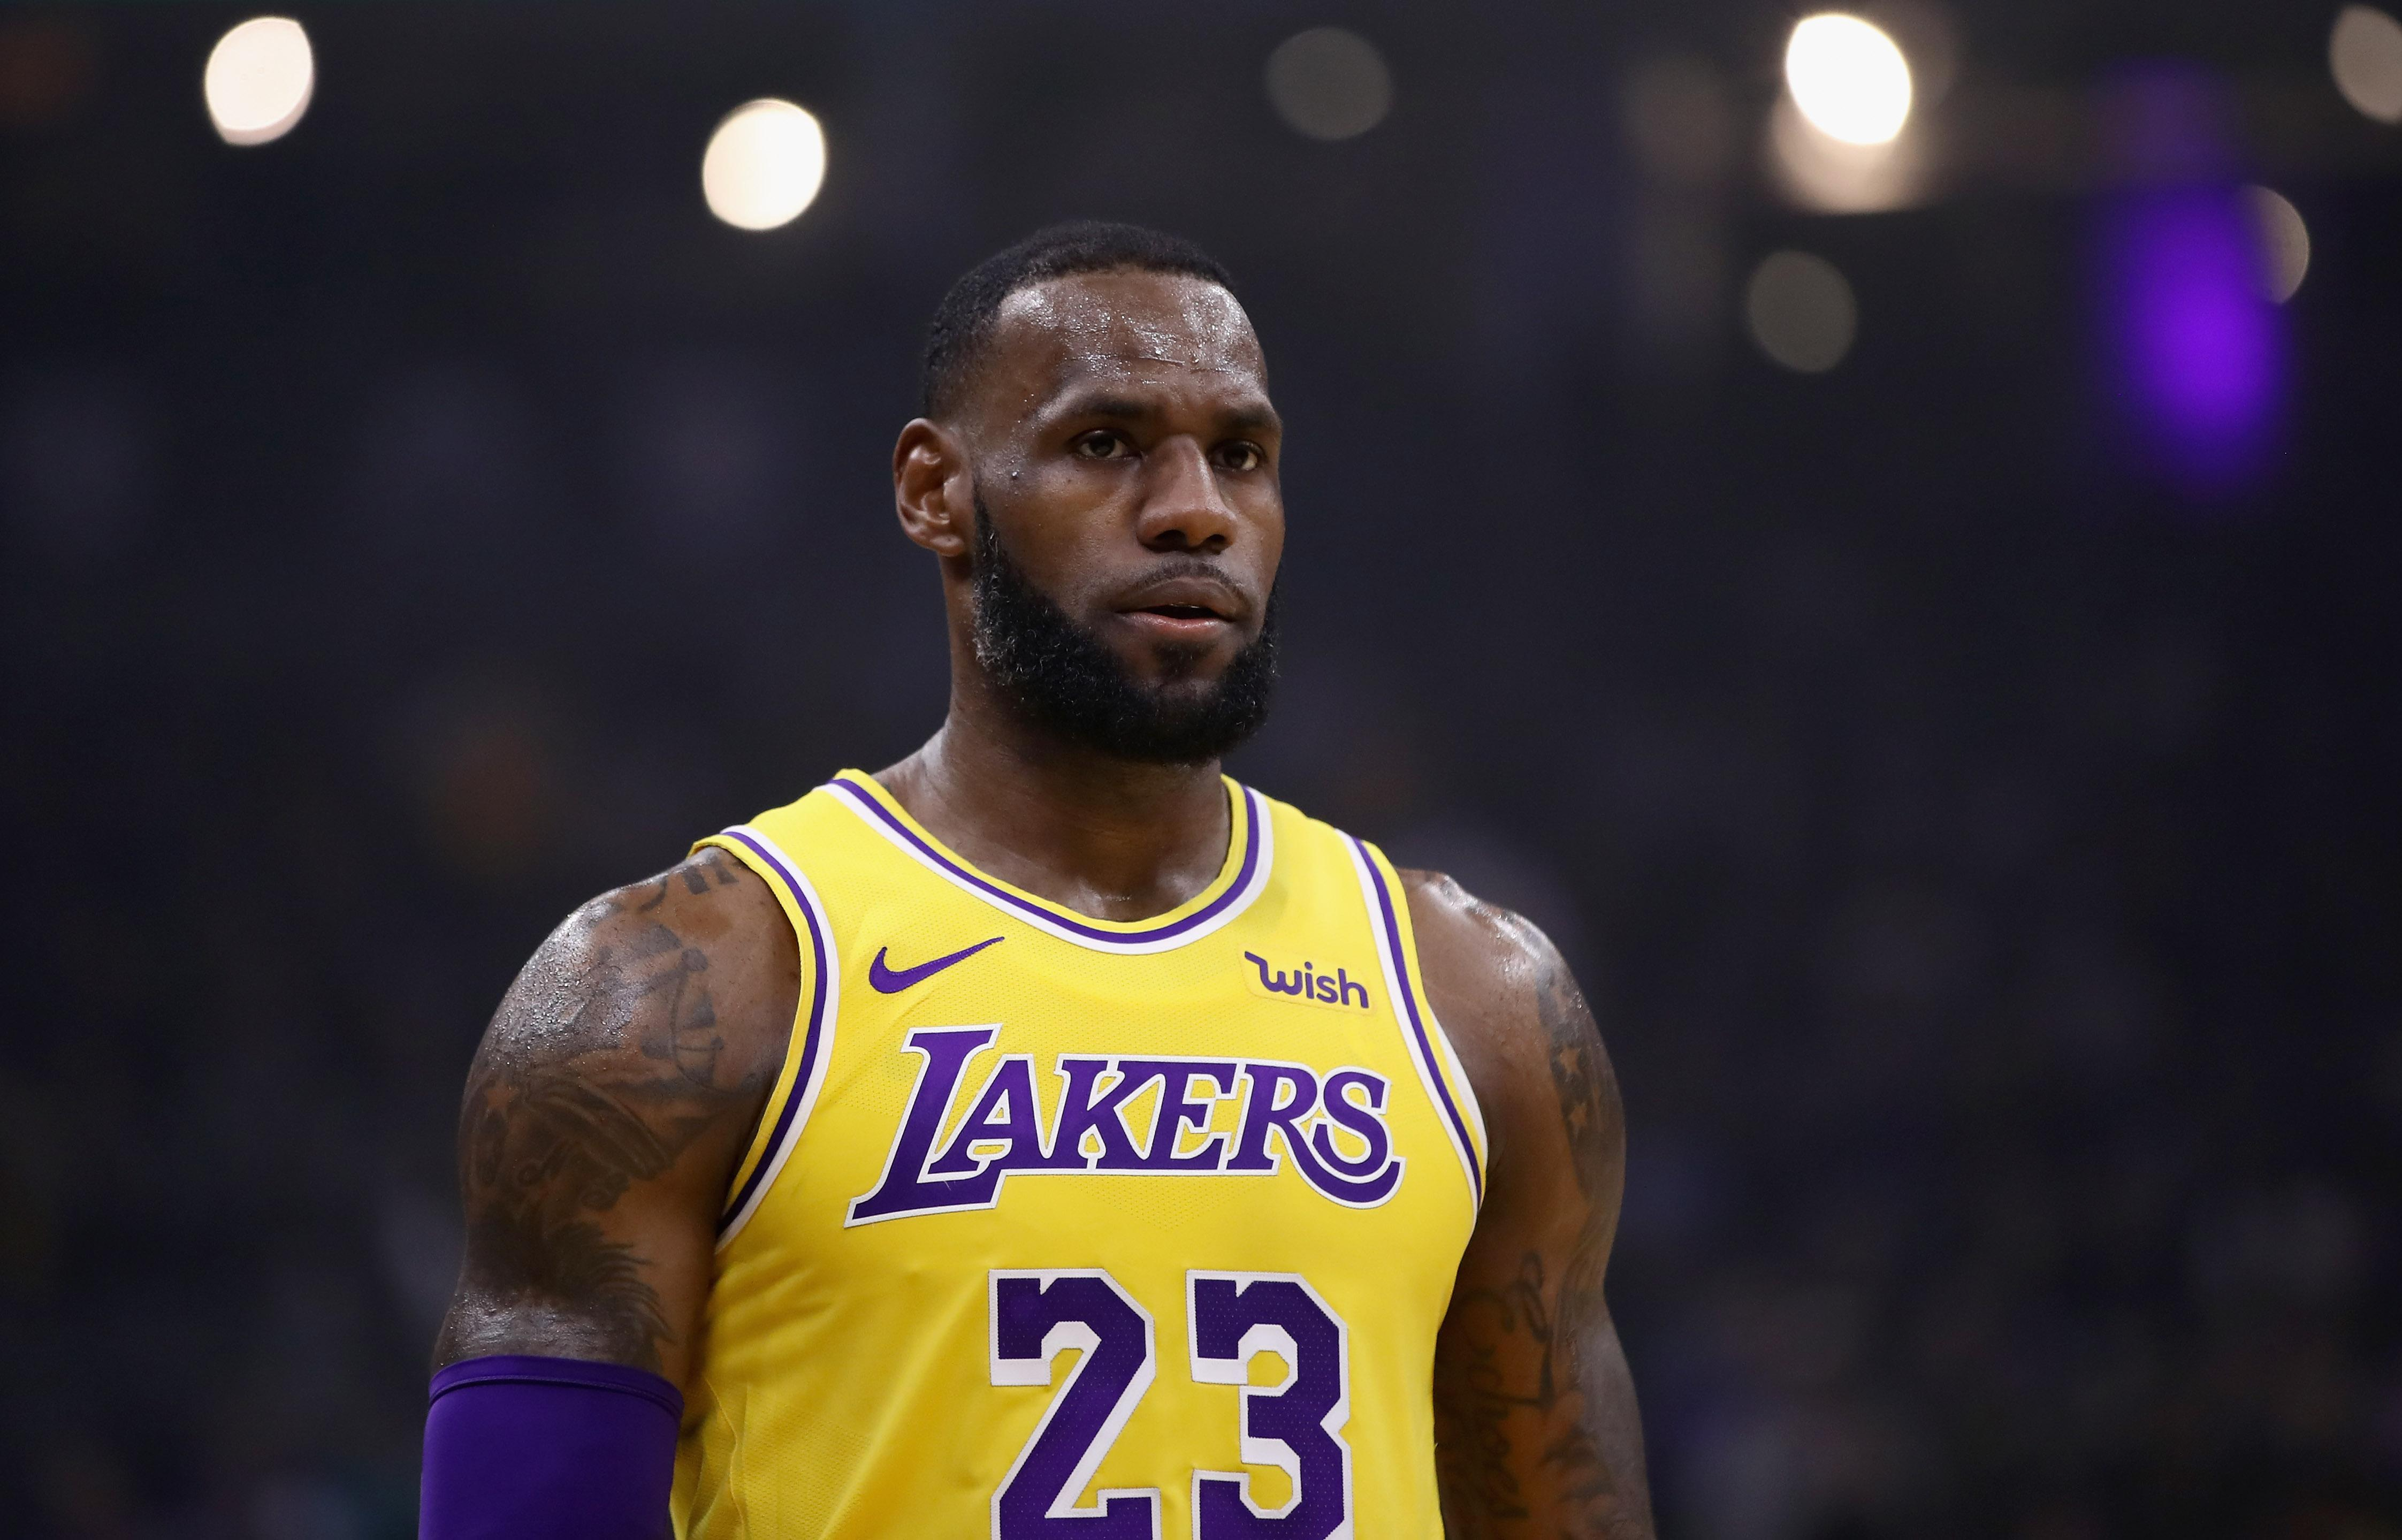 Cavaliers vs. Lakers: LeBron Hoping For Positive Reception, Tribute Video Planned